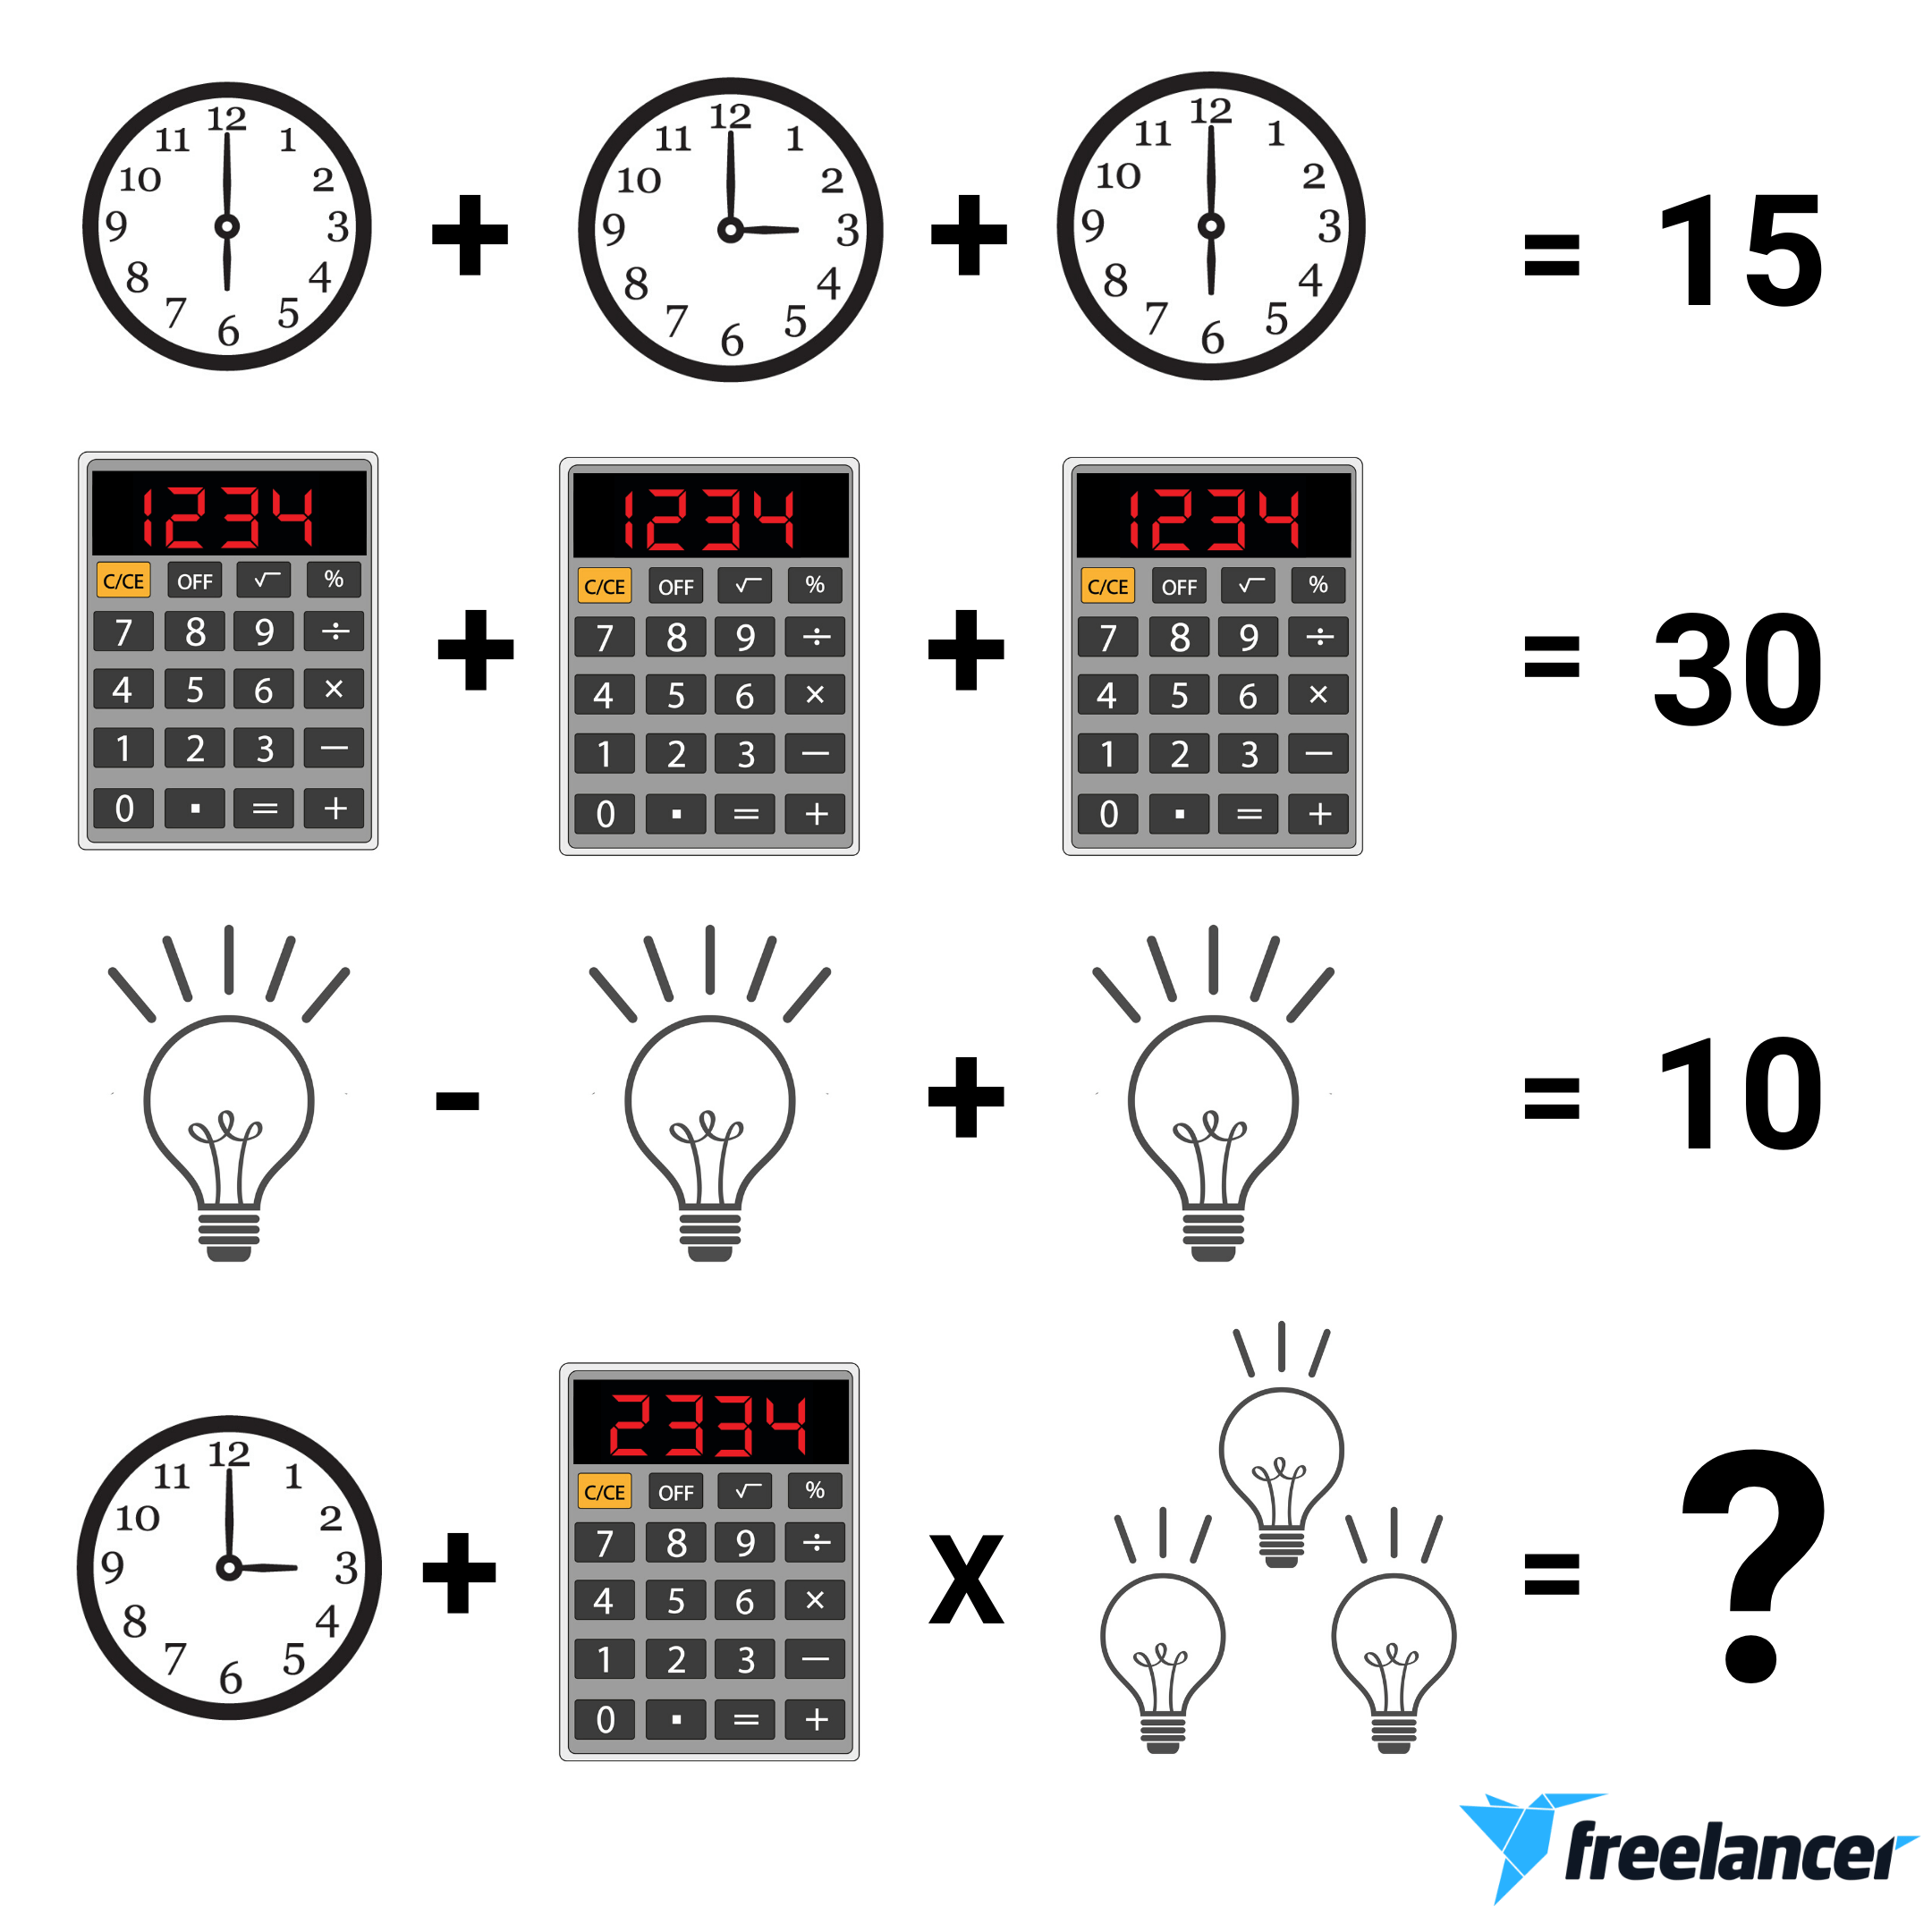 freelancer math competition